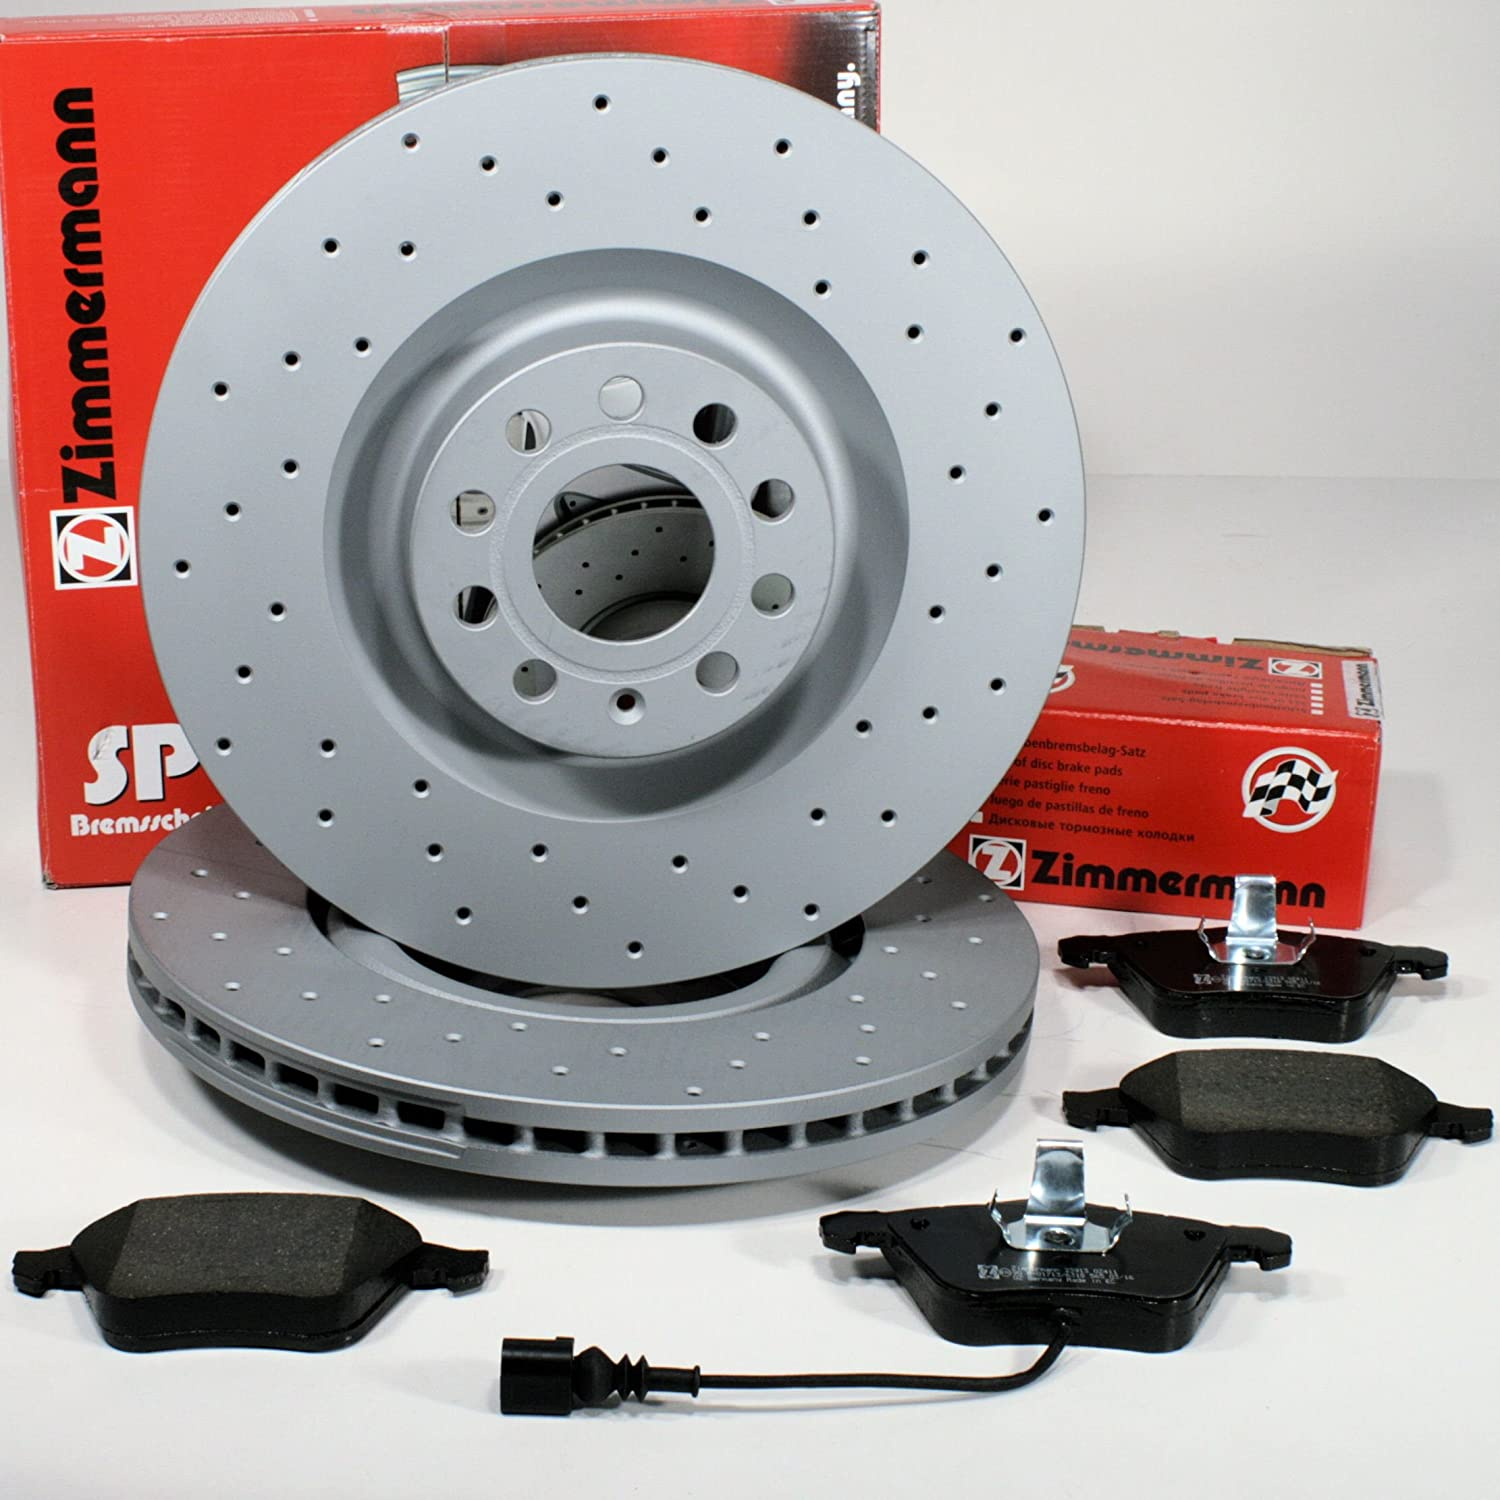 Zimmermann Sport Brake Discs Seat Leon (1P) – 1lb Coat Z Perforated with Brake Front Cable Alarm, Front Axle Autoparts-Online